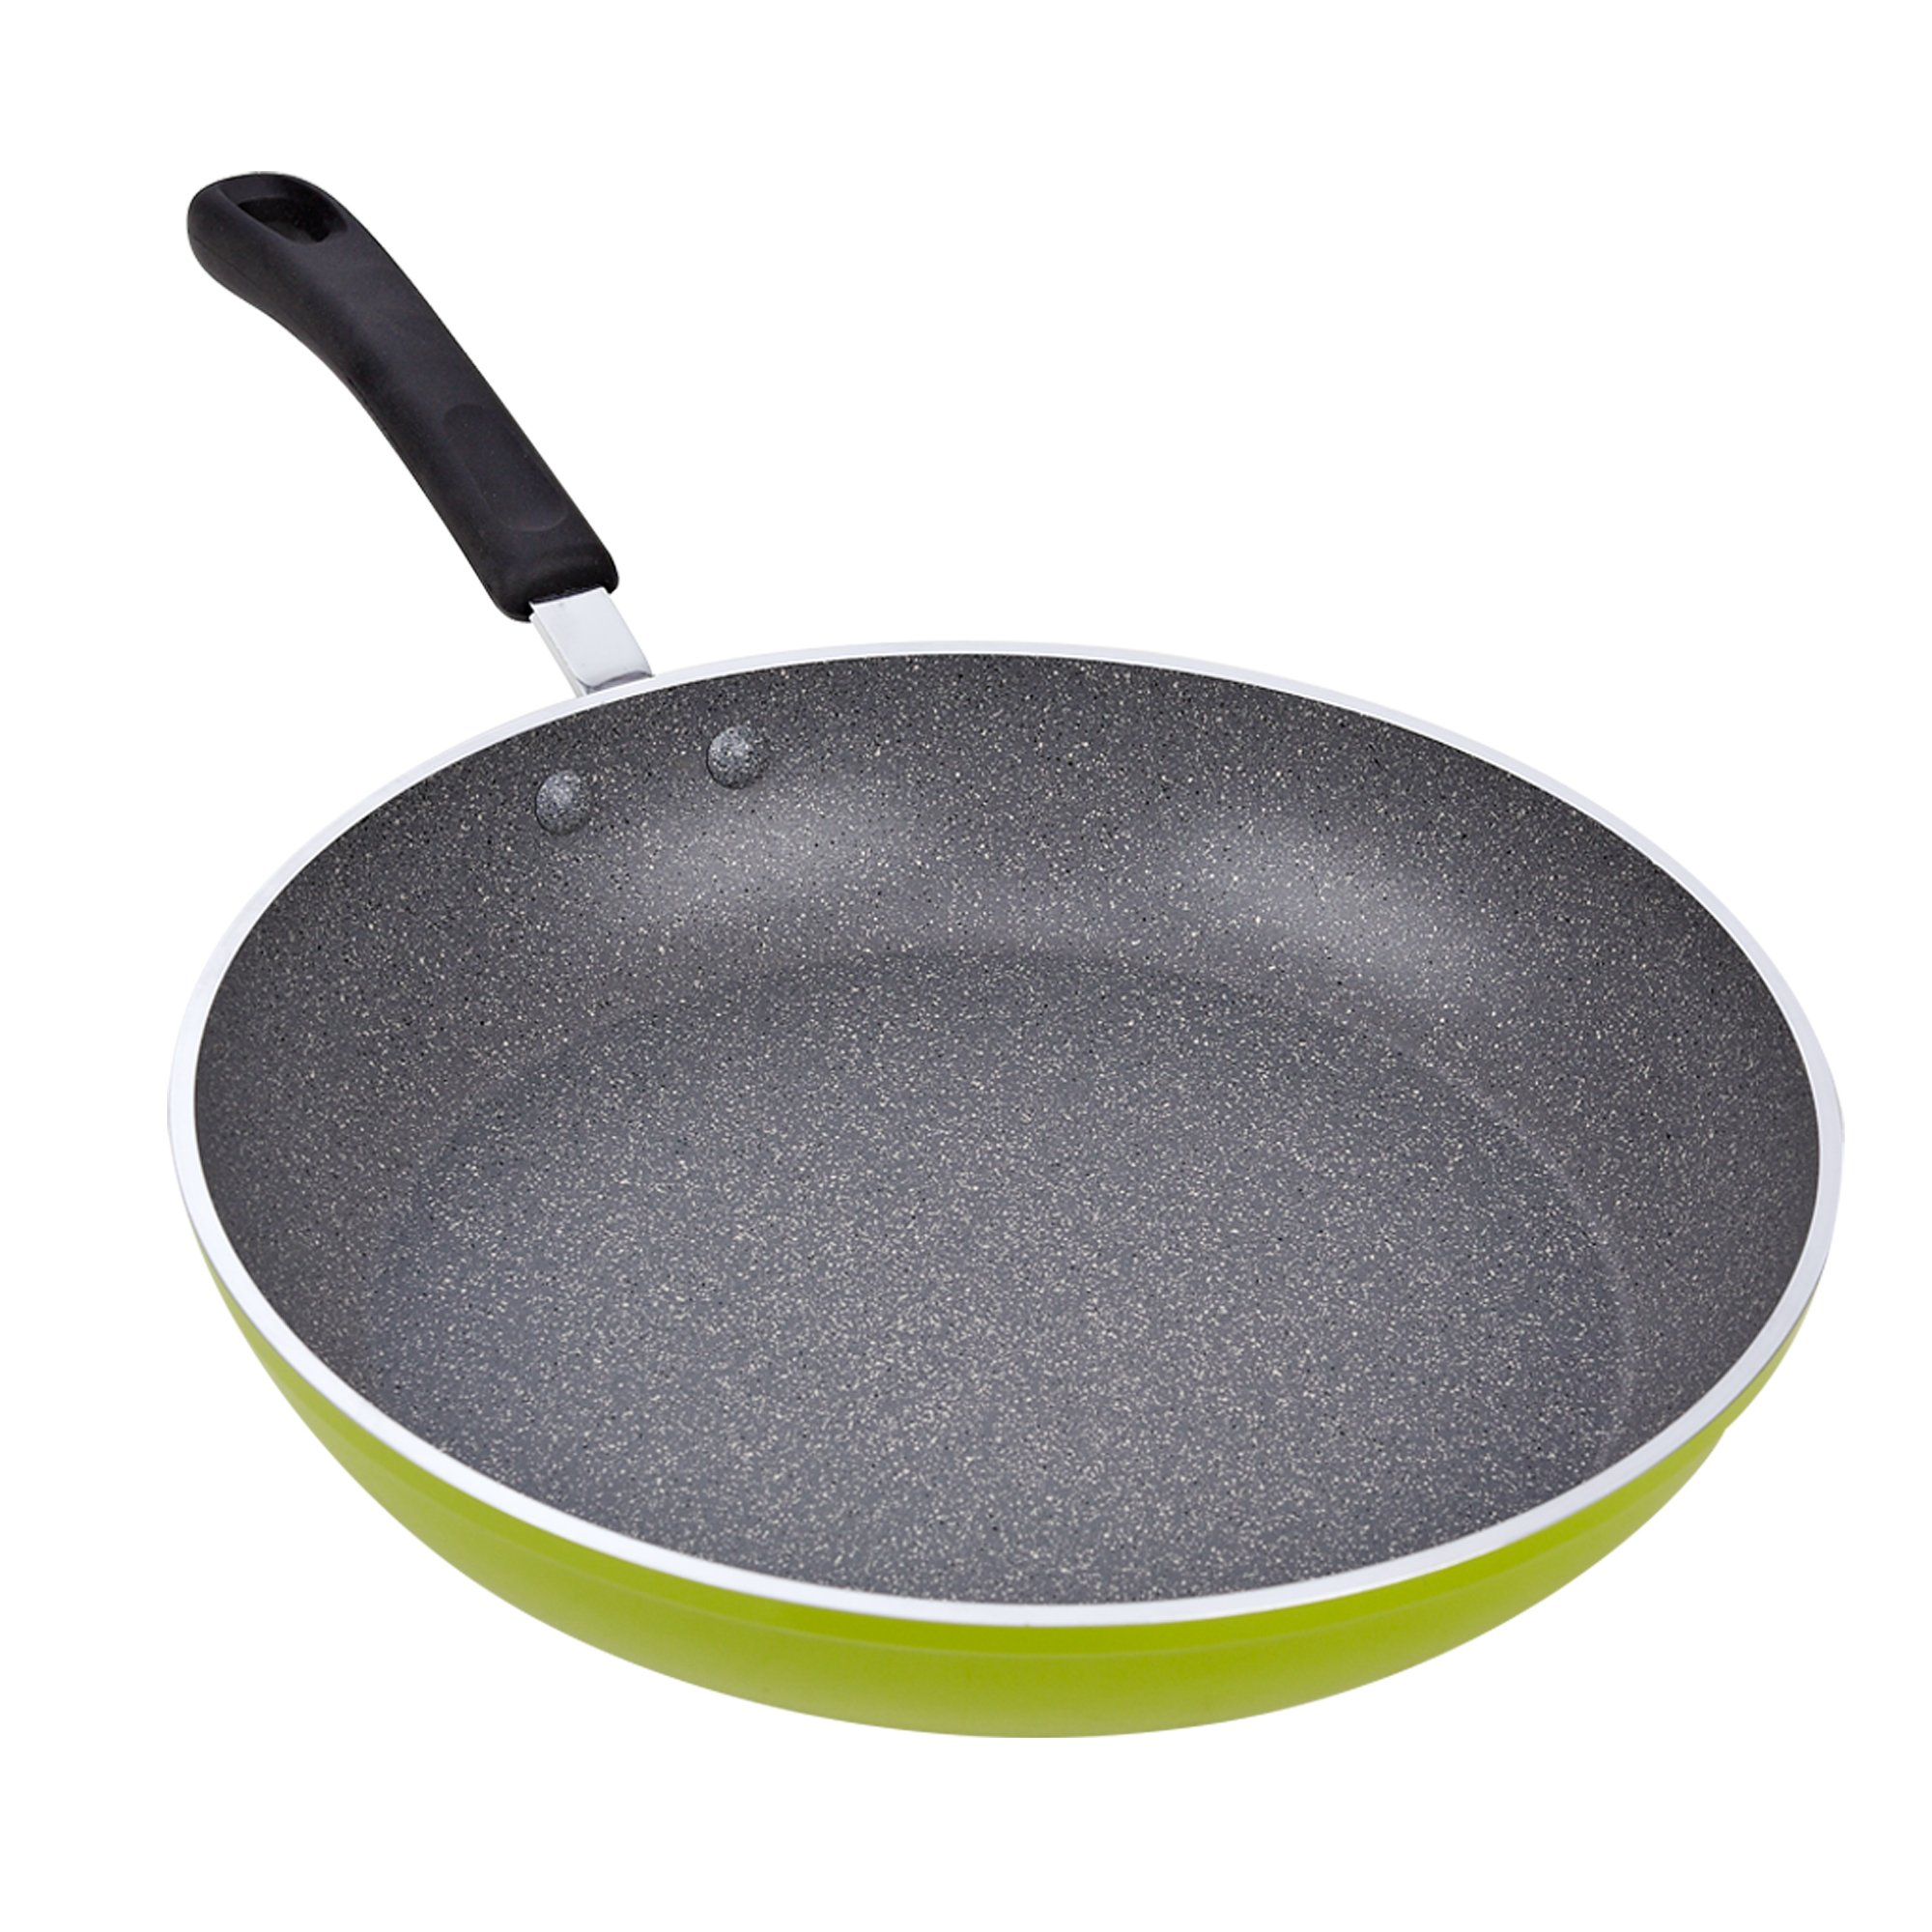 Cook N Home 02404 12-Inch Frying Pan with Non-Stick Coating Induction Compatible Bottom, Large, Green by Cook N Home